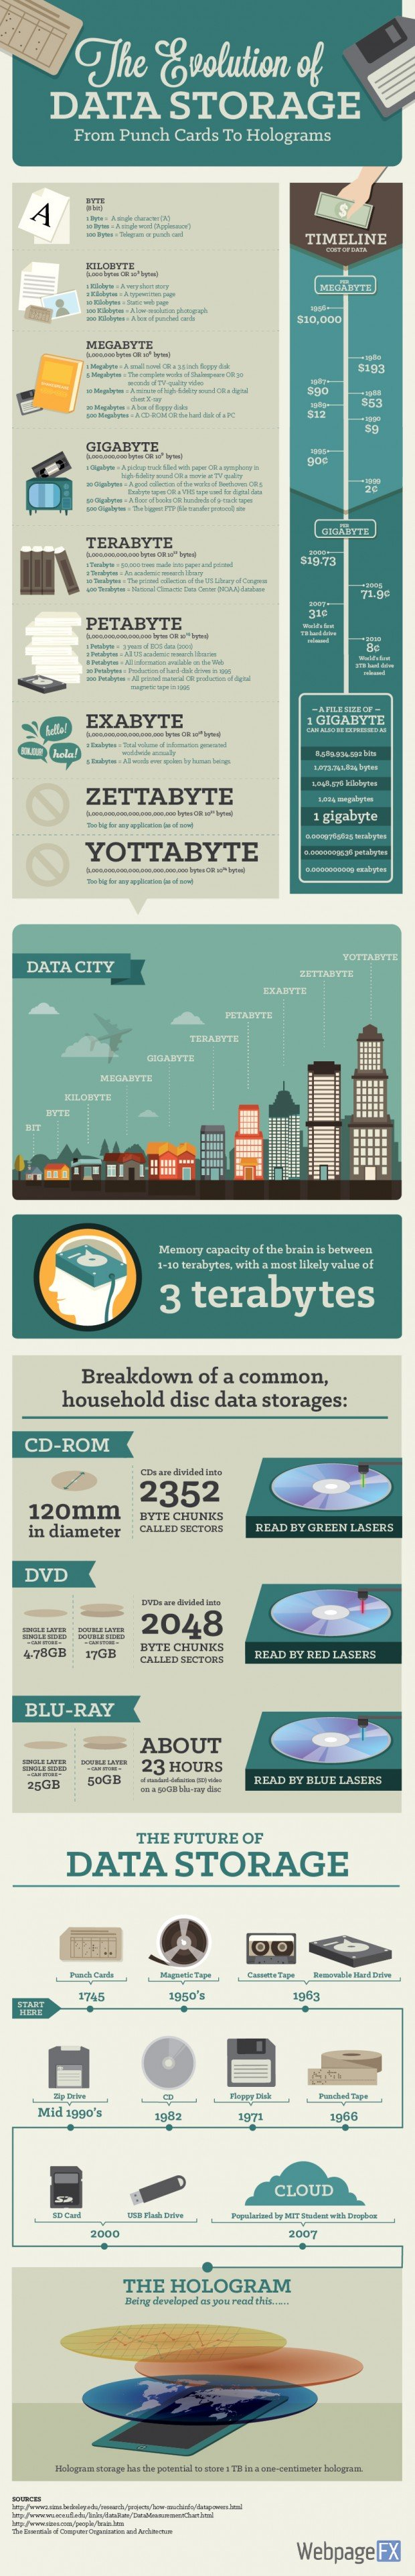 data-storage-infographic